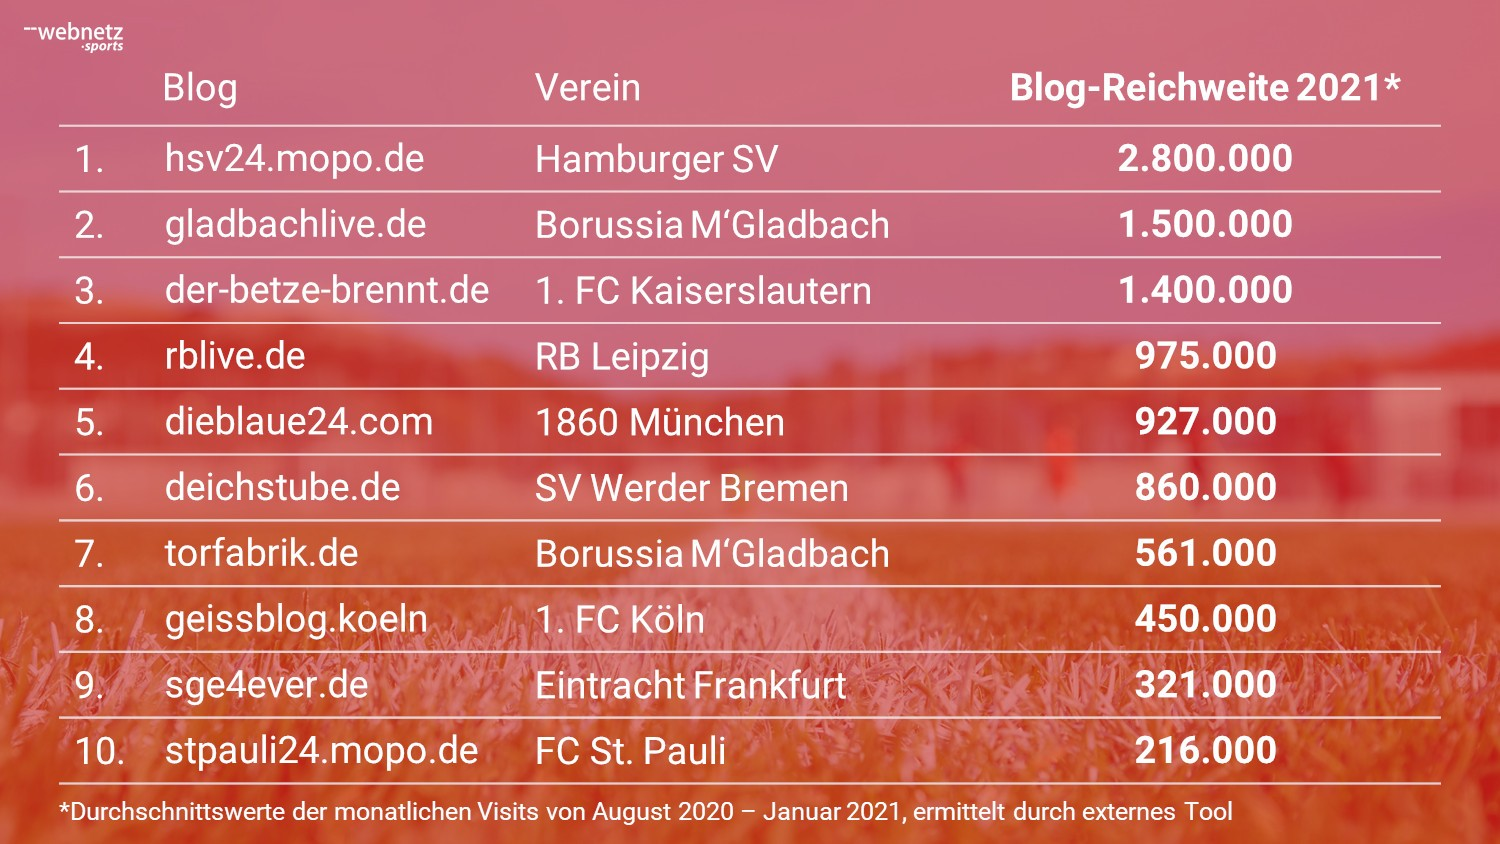 Top 10 Fußballblogs nach Website Visits